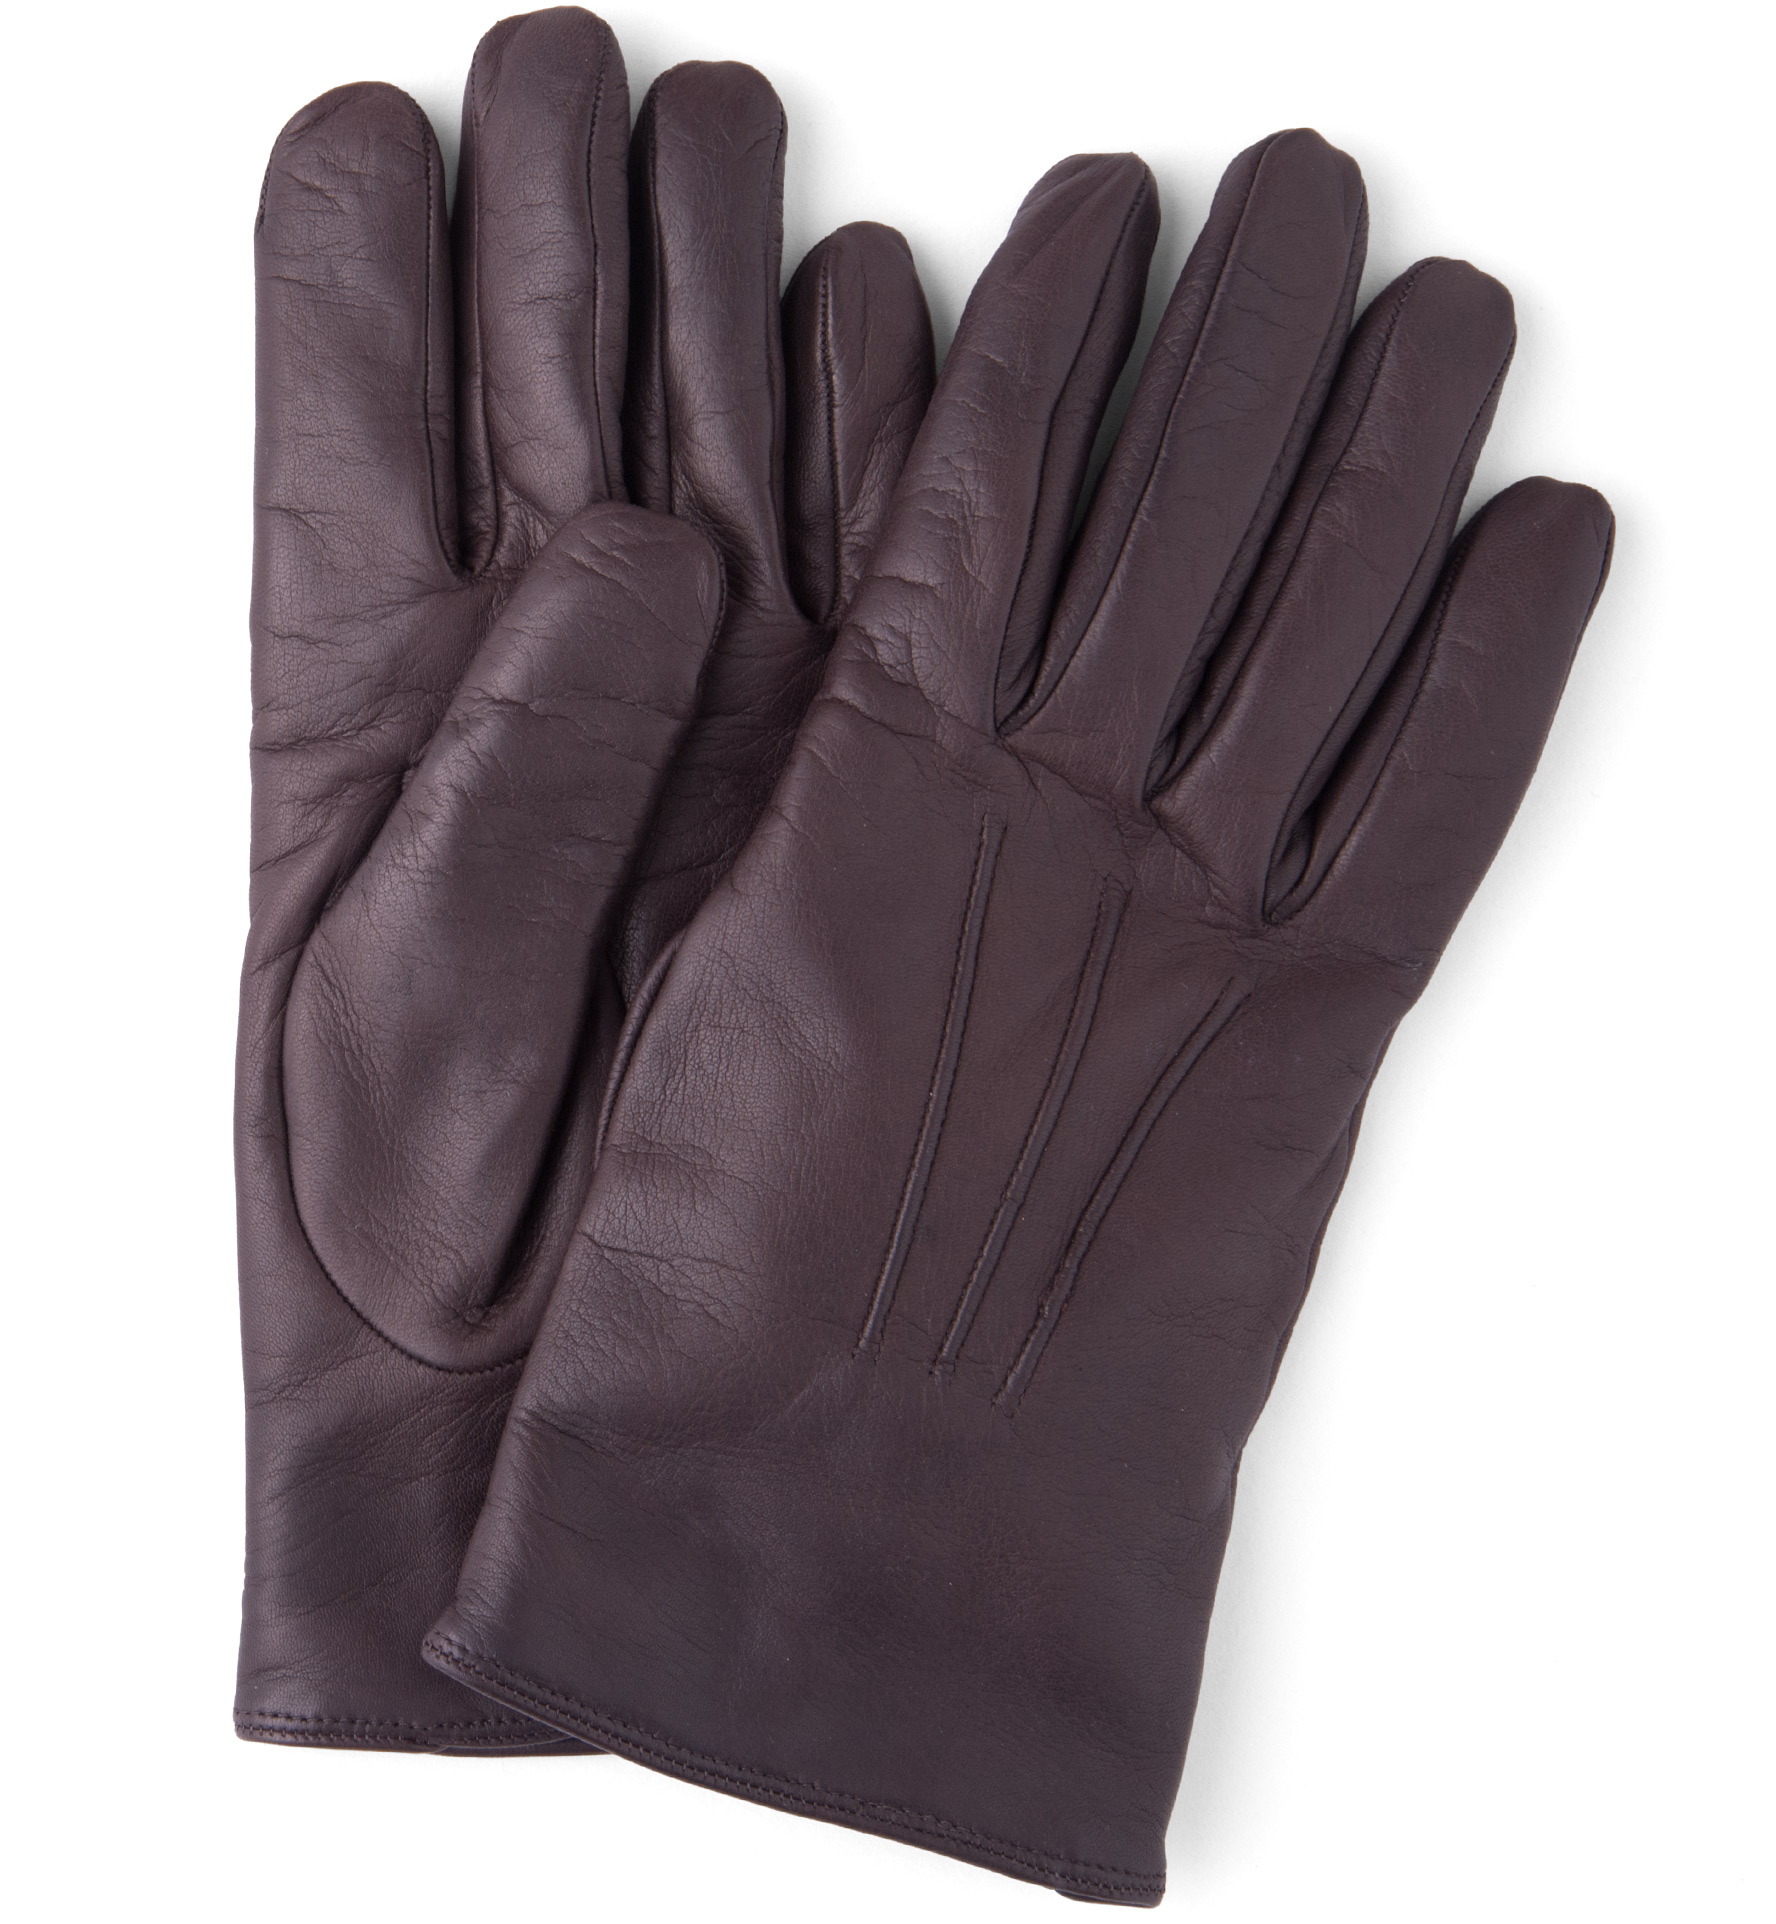 Zoom Image of Dark Brown Leather Cashmere Lined Gloves